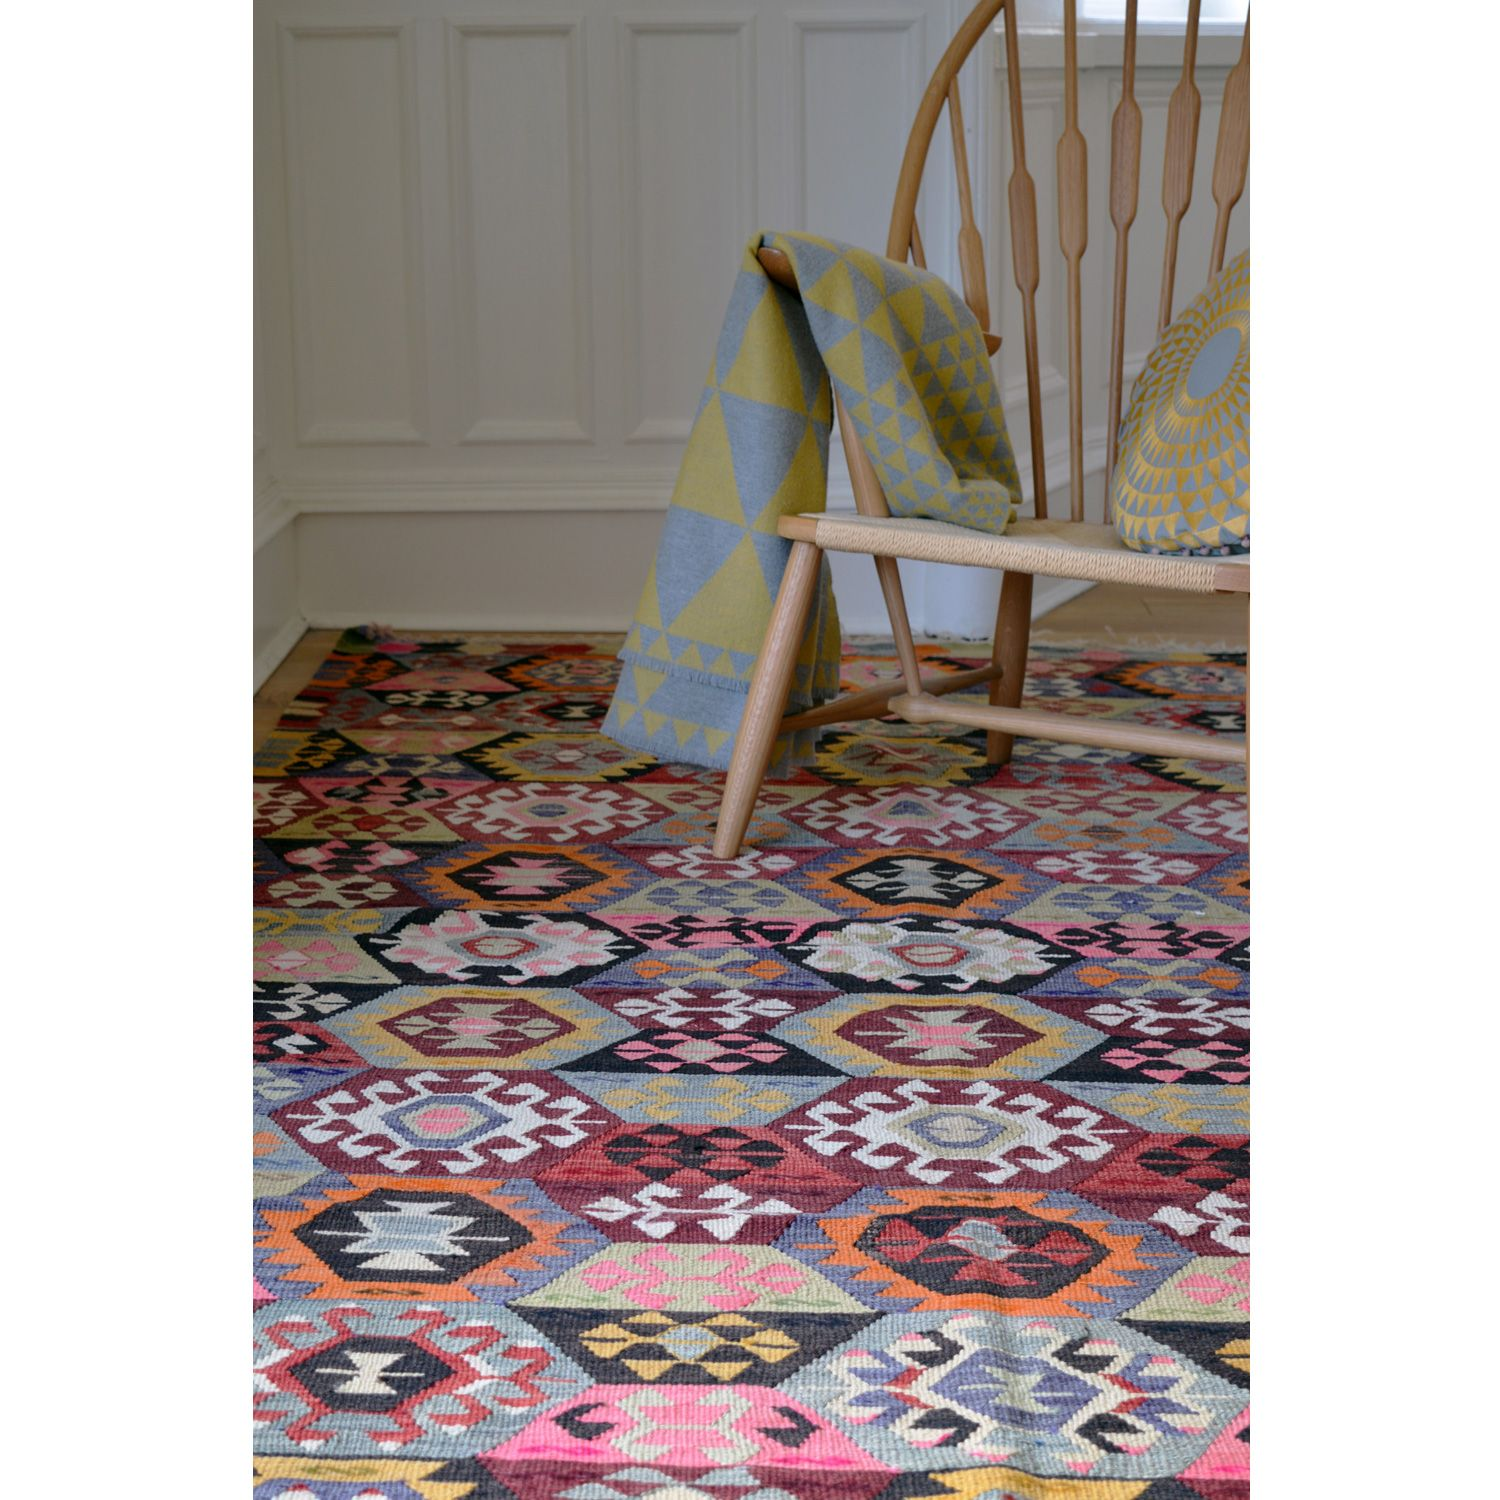 This Wool Flat Weave Kilim Originates From The Kula Region West Of Anatolia And Dates Find Pin More On Niki Jones Rug